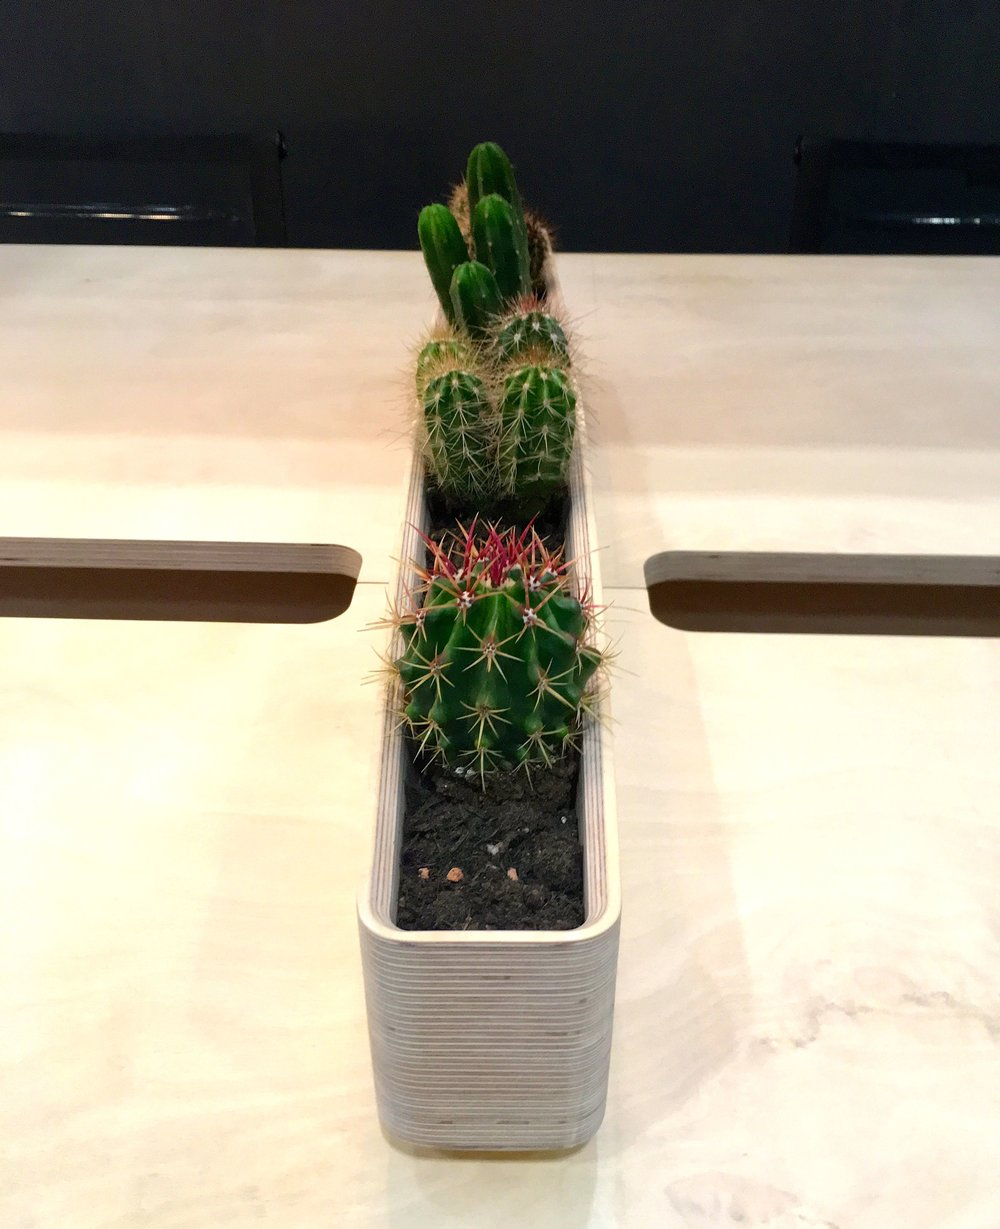 x-ply desks adorned with succulents